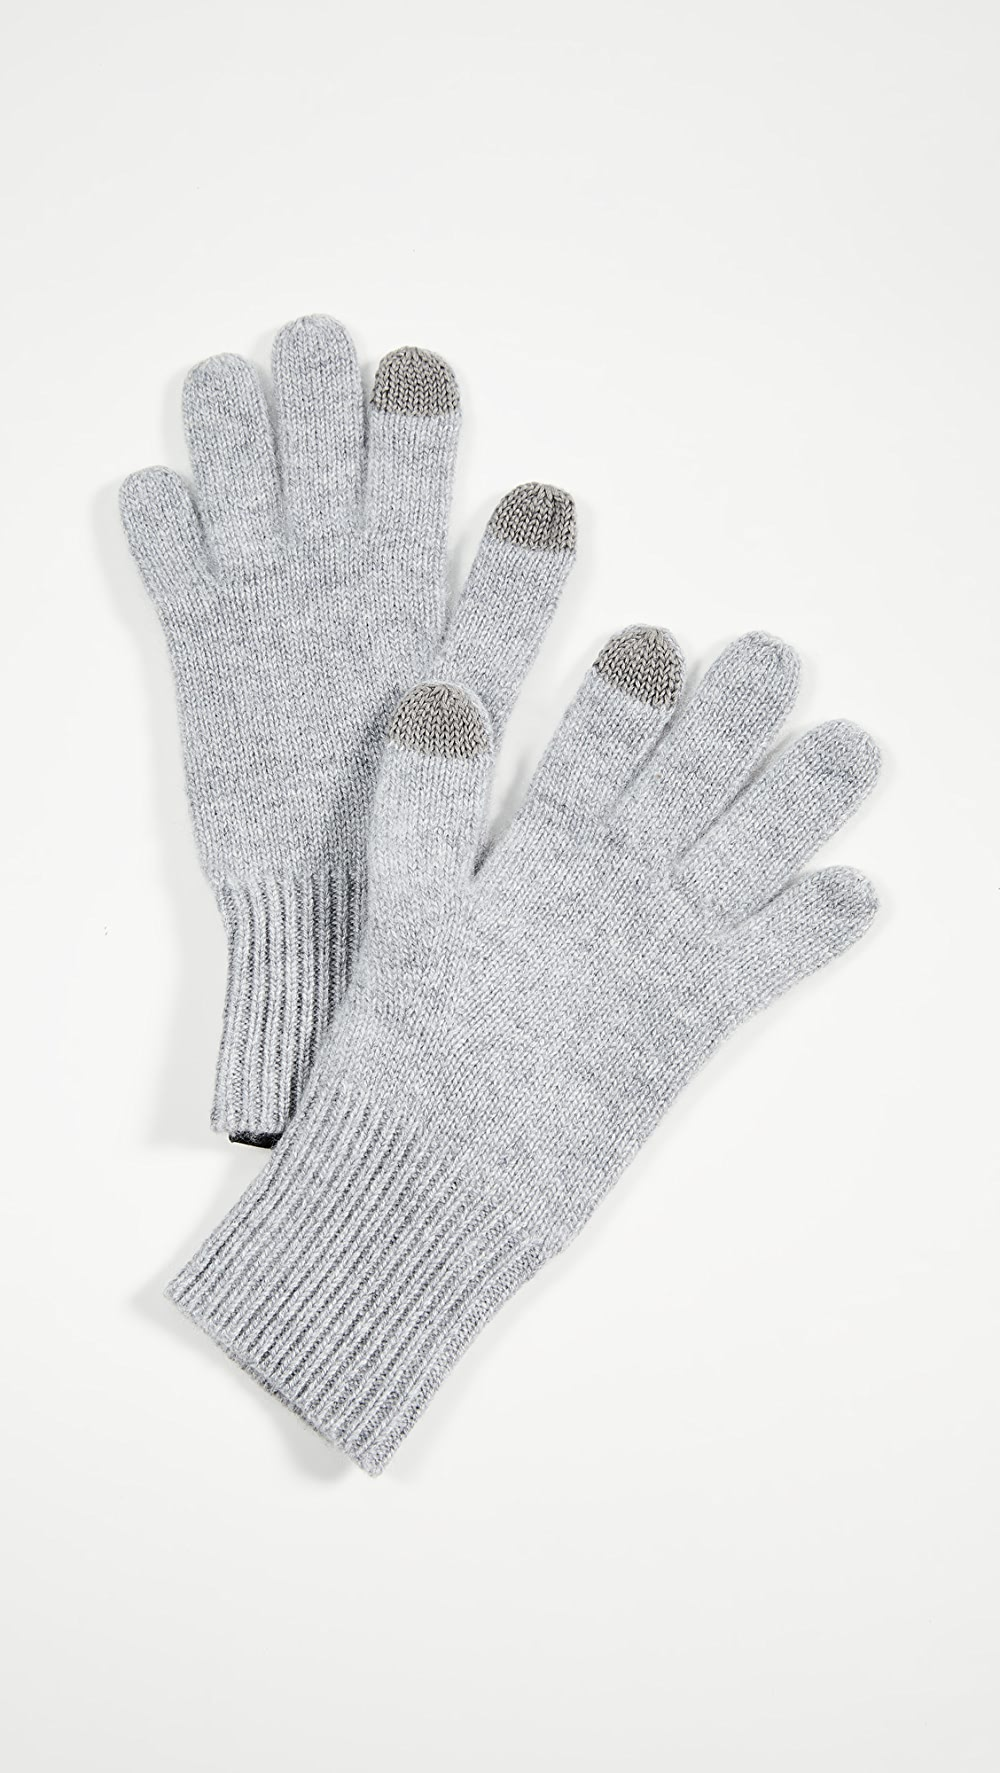 Active Rag & Bone - Ace Cashmere Gloves Sophisticated Technologies